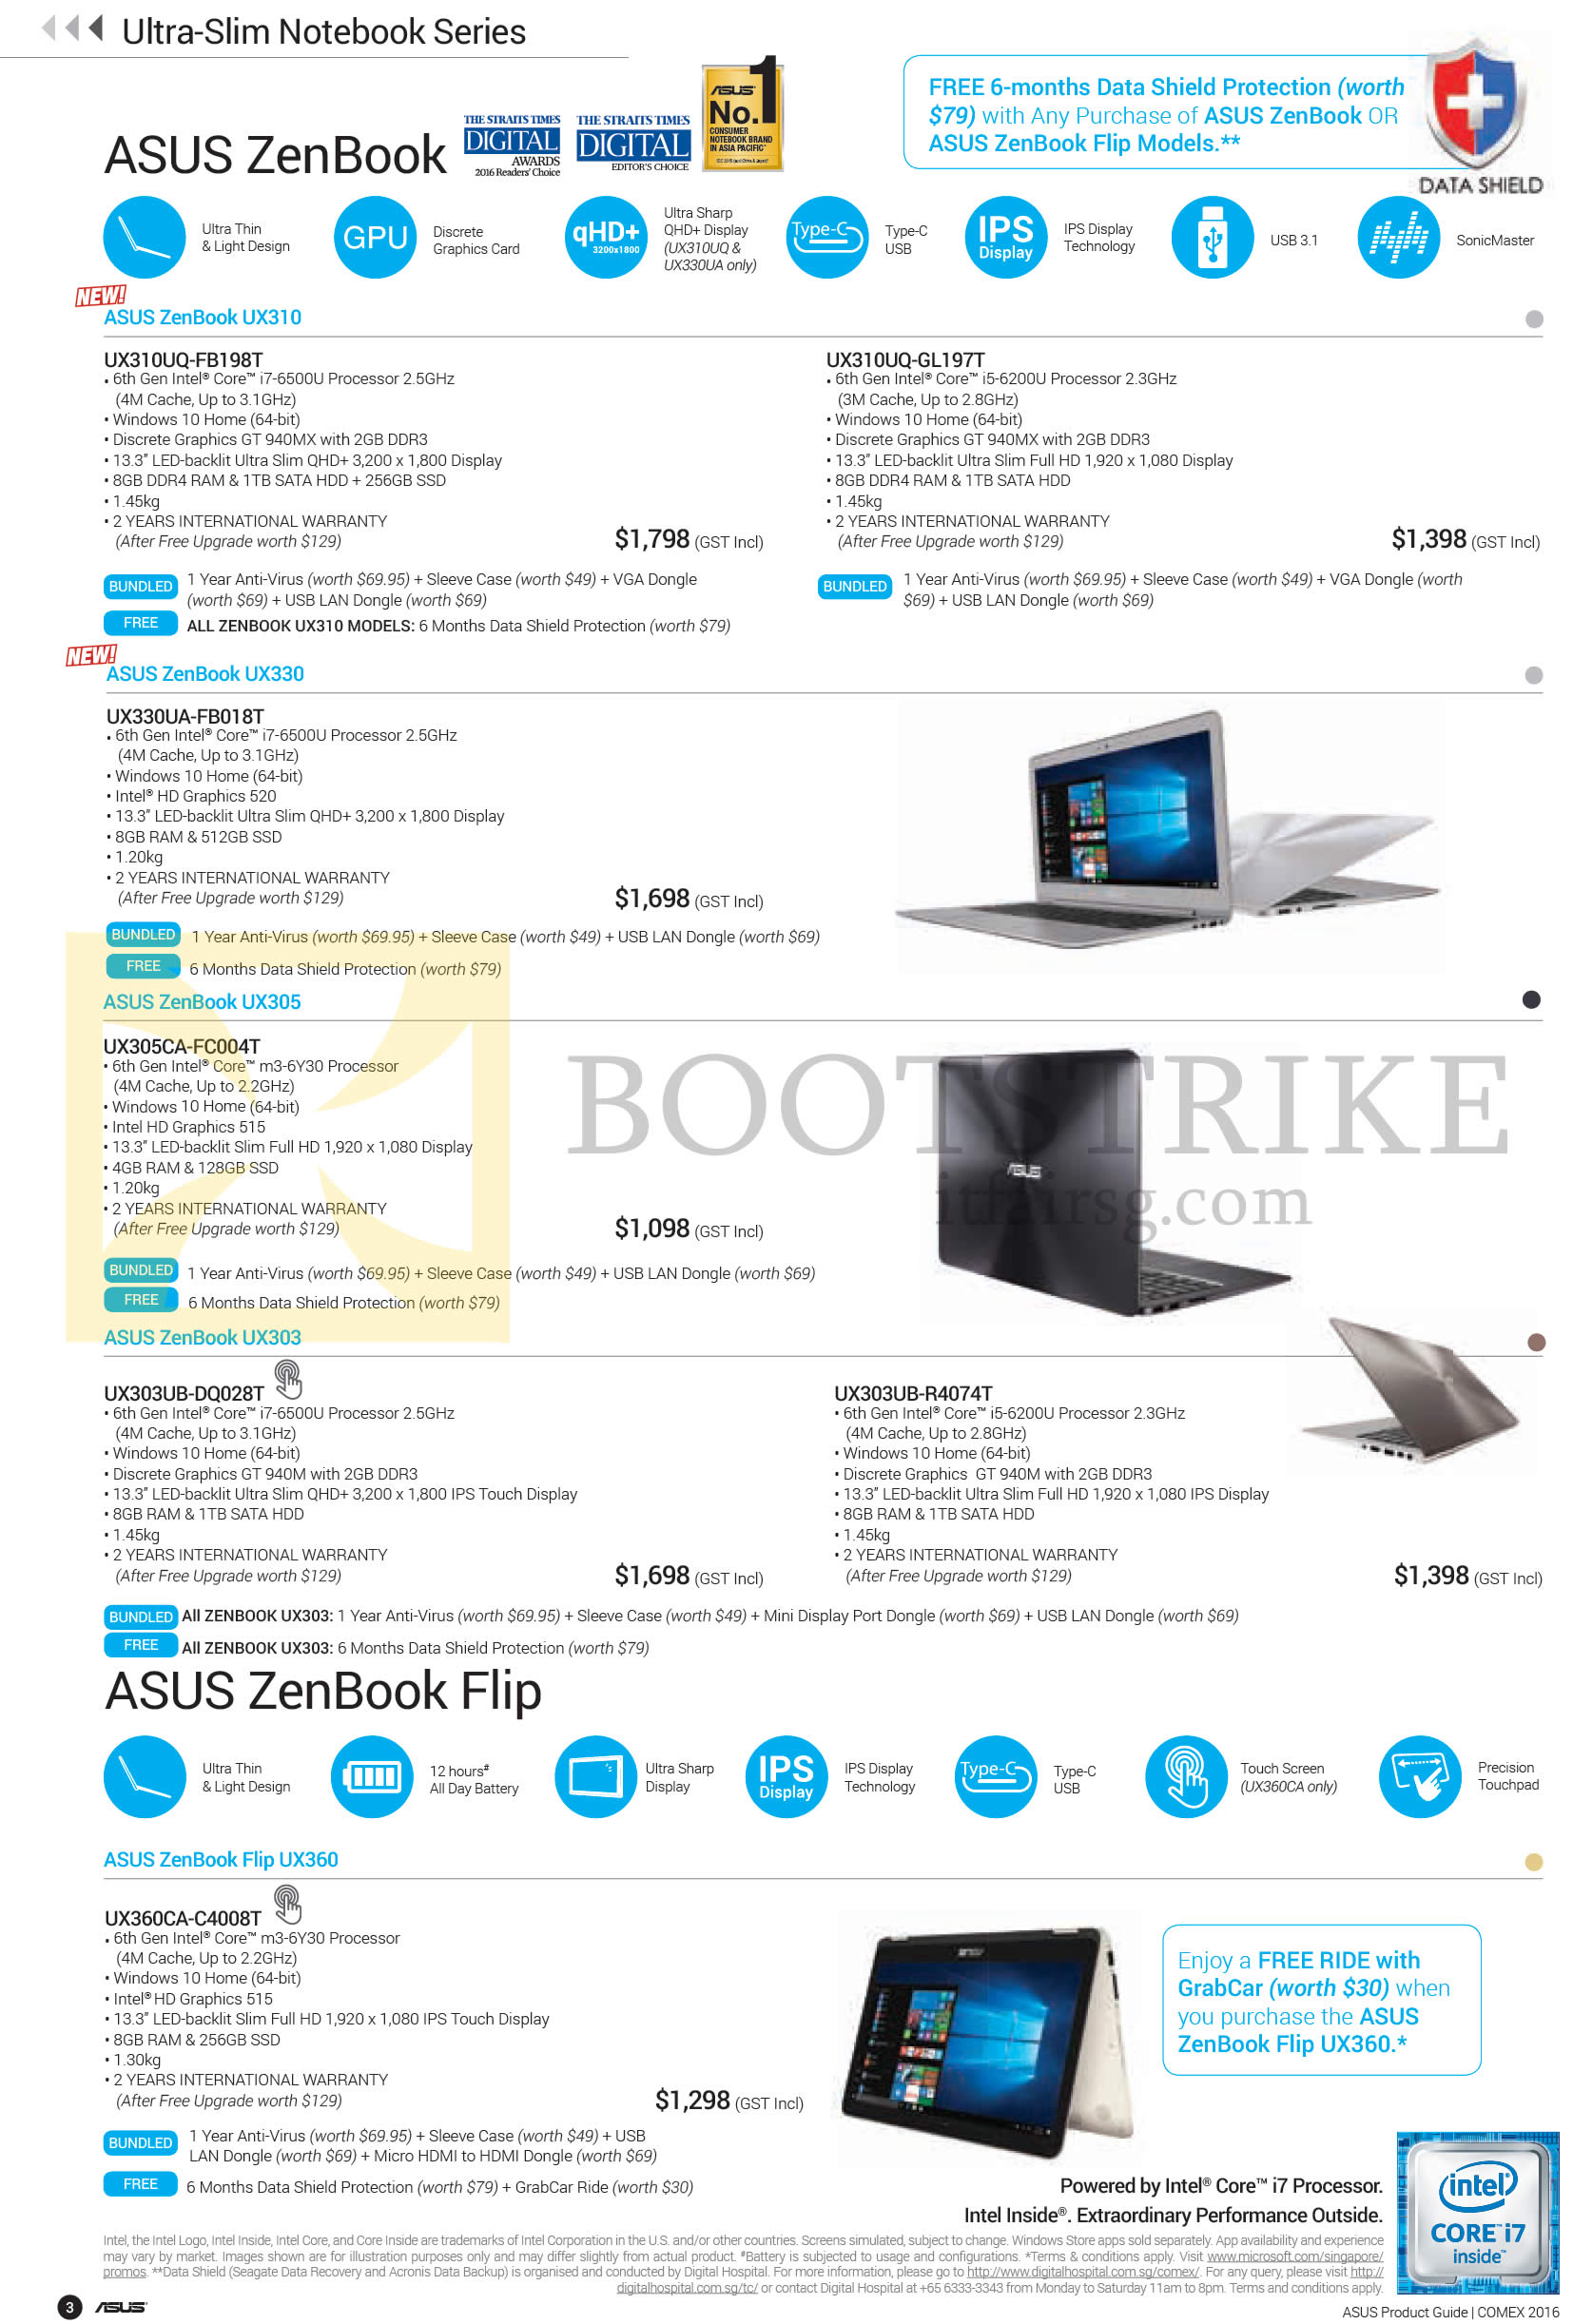 COMEX 2016 price list image brochure of ASUS Notebooks Zenbook UX310, UX330, UX305, UX303, Flip UX360 Series